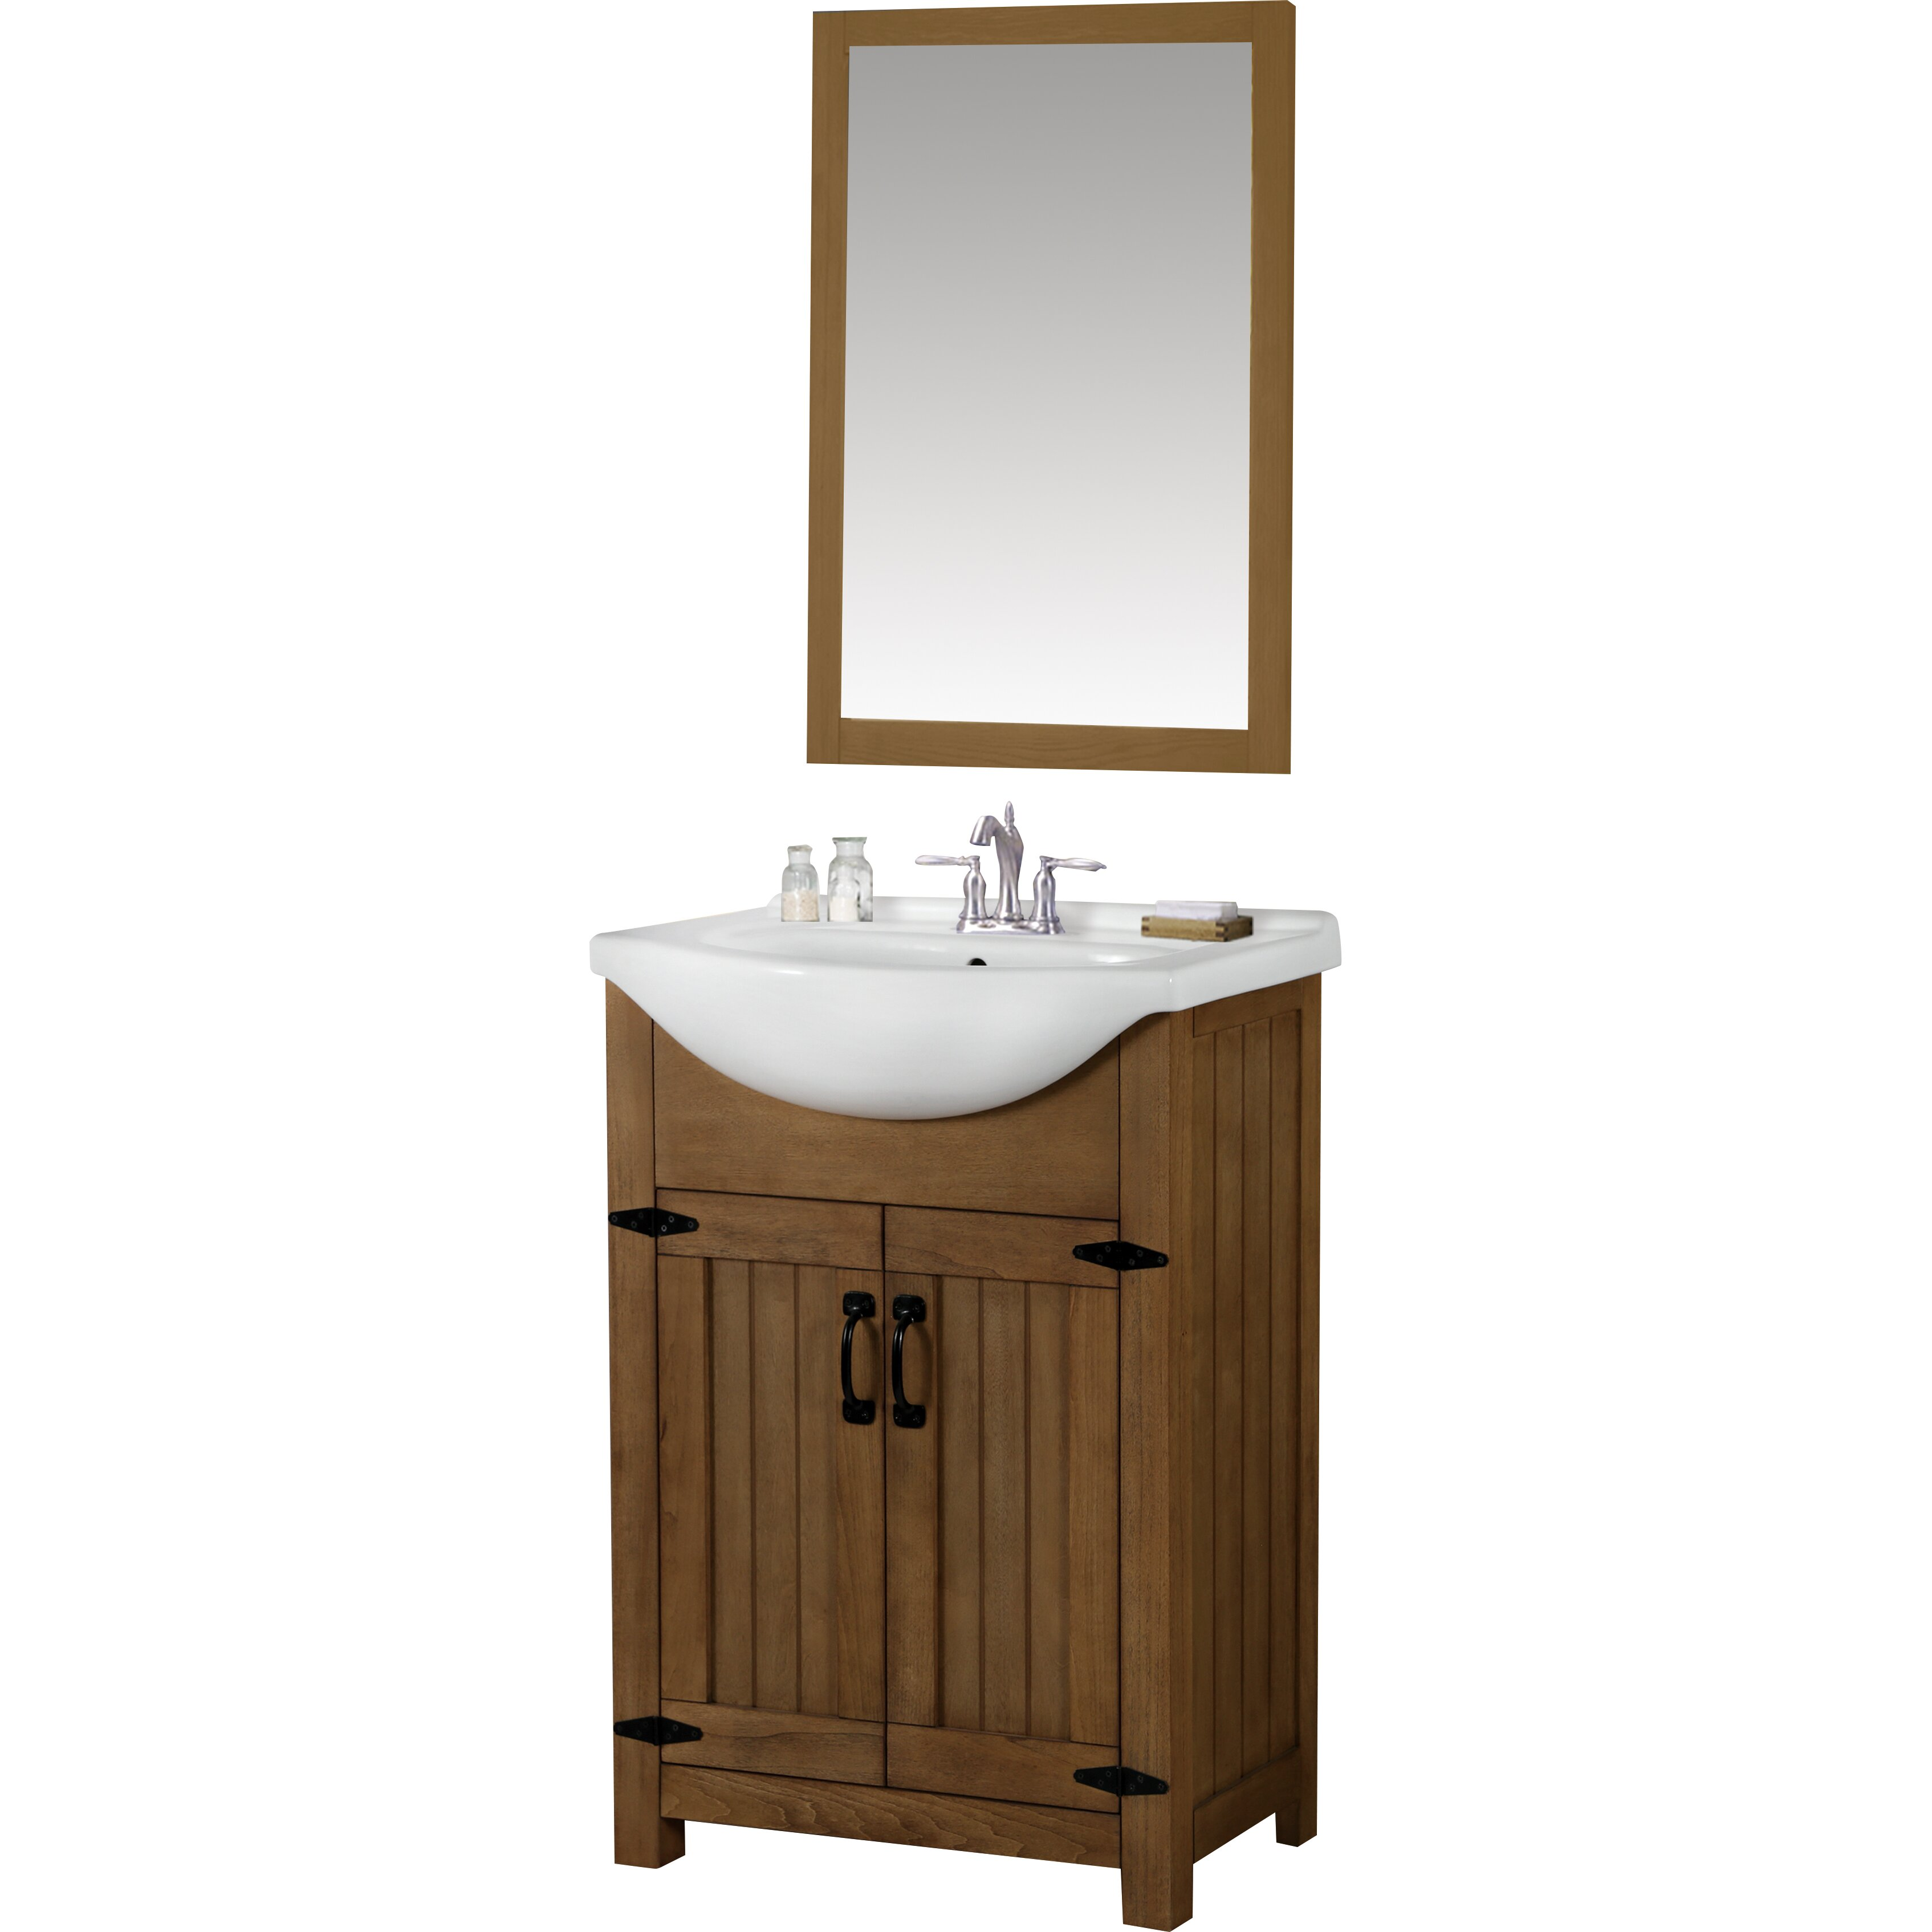 Image Result For Where To Buy Vanity Sets With Lights